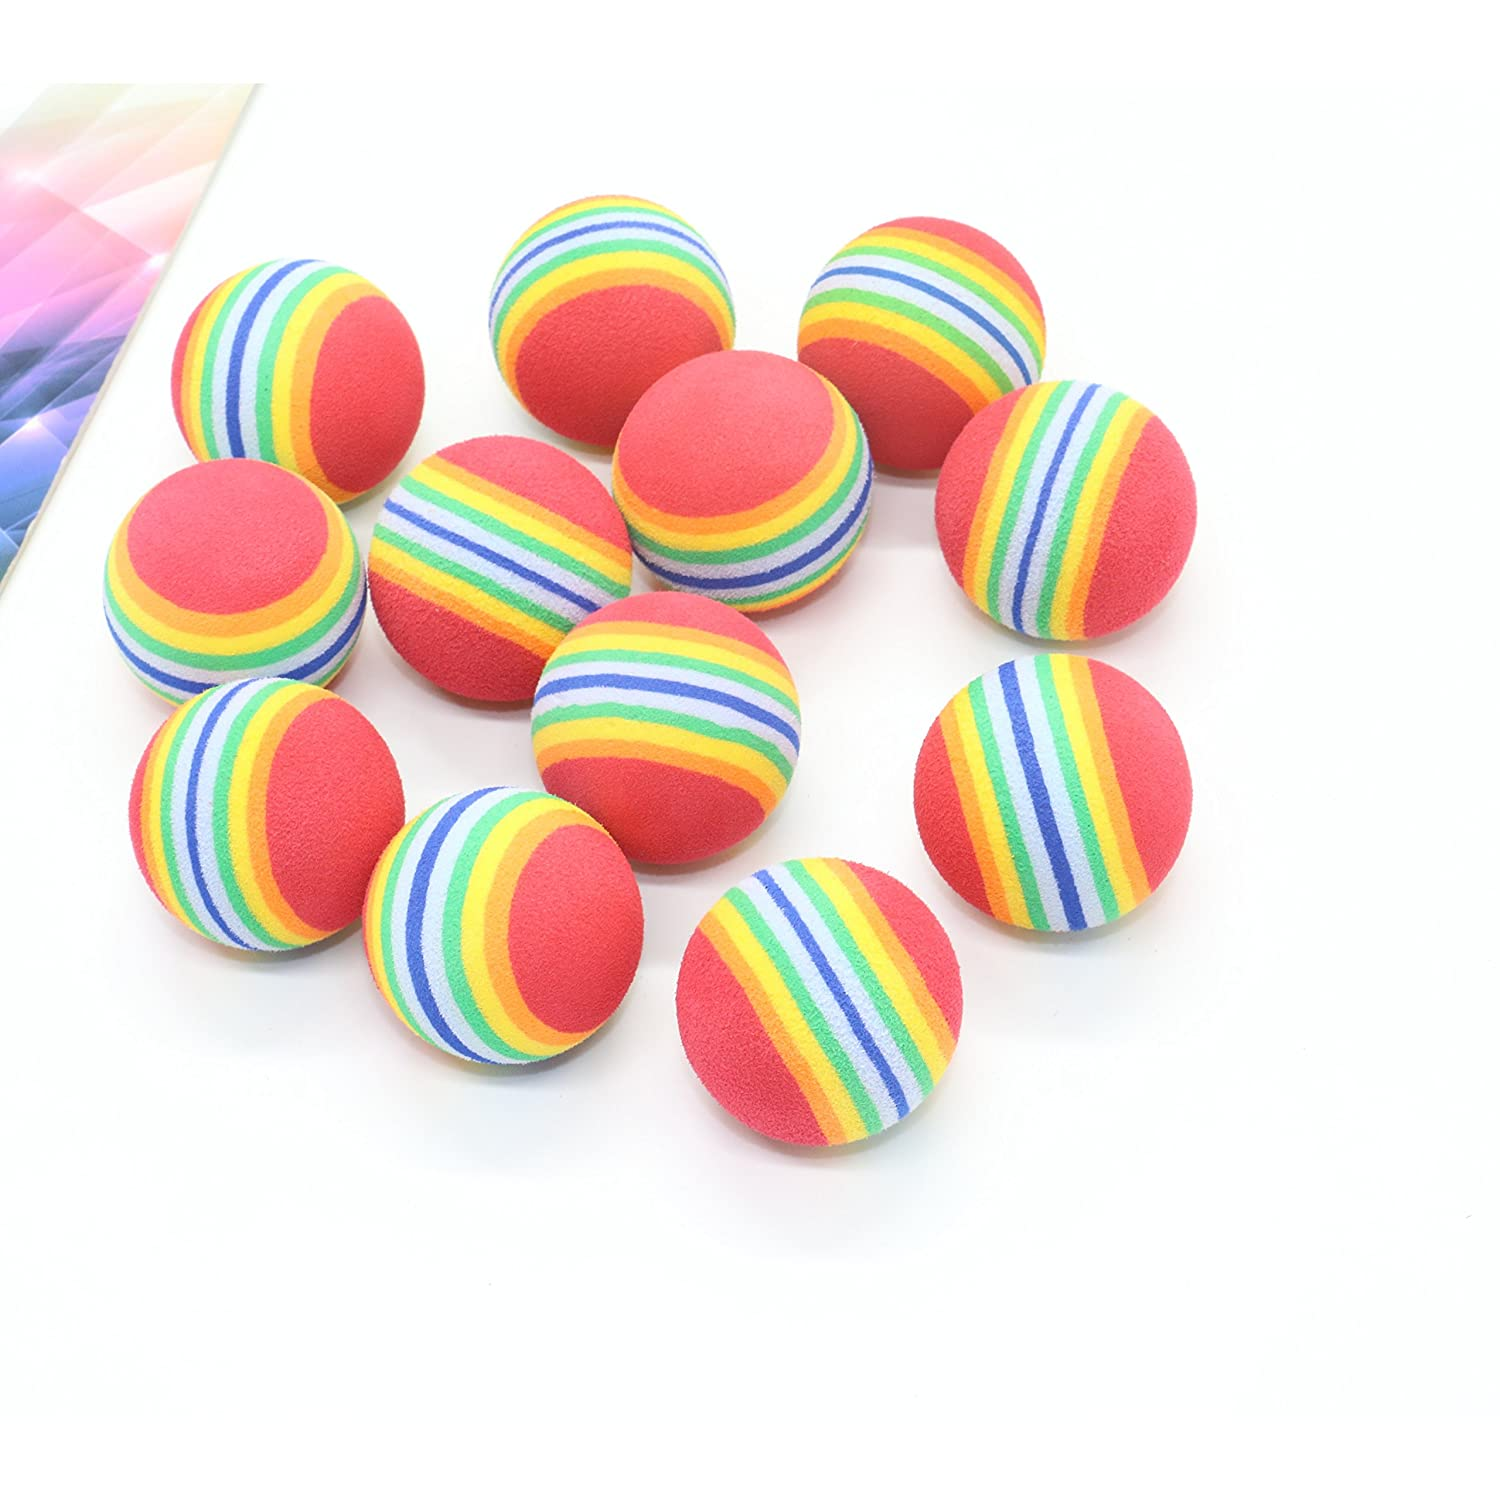 Pack of 12 Colorful Soft Foam Rainbow Play Balls For Pet Cat By IDS